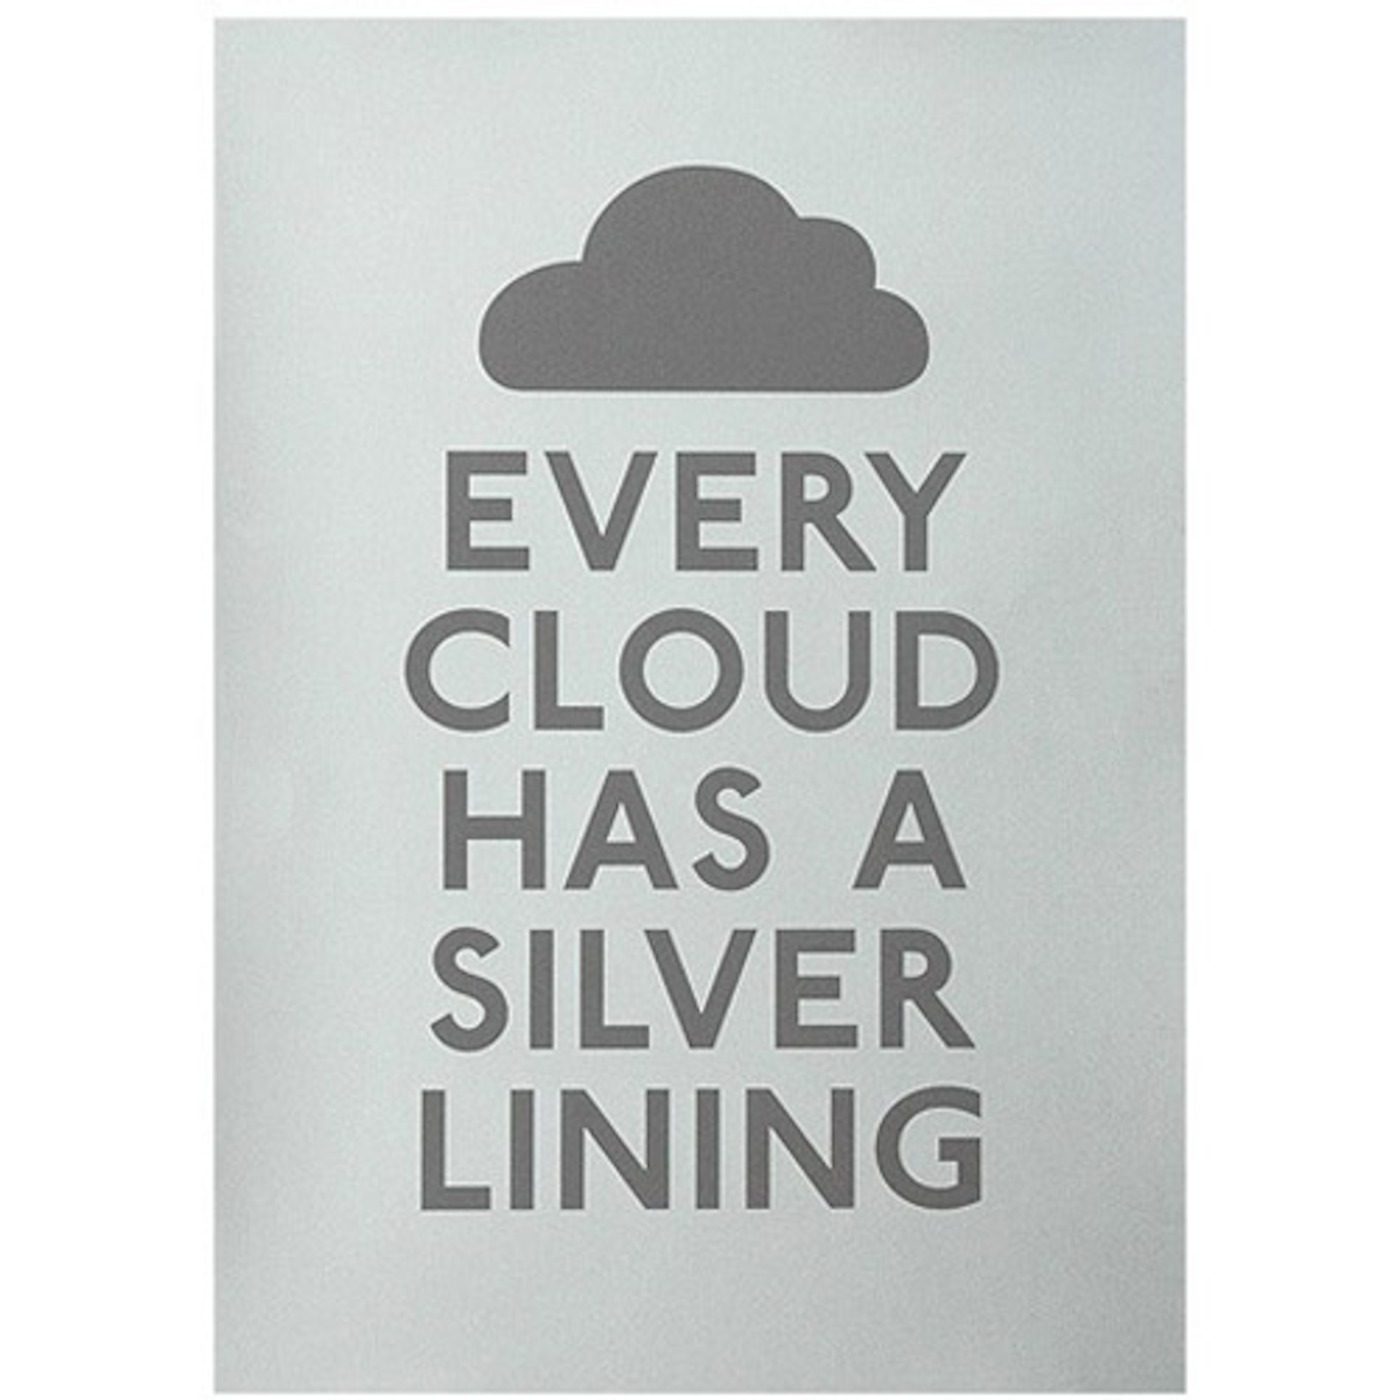 every cloud has a silver lining essay